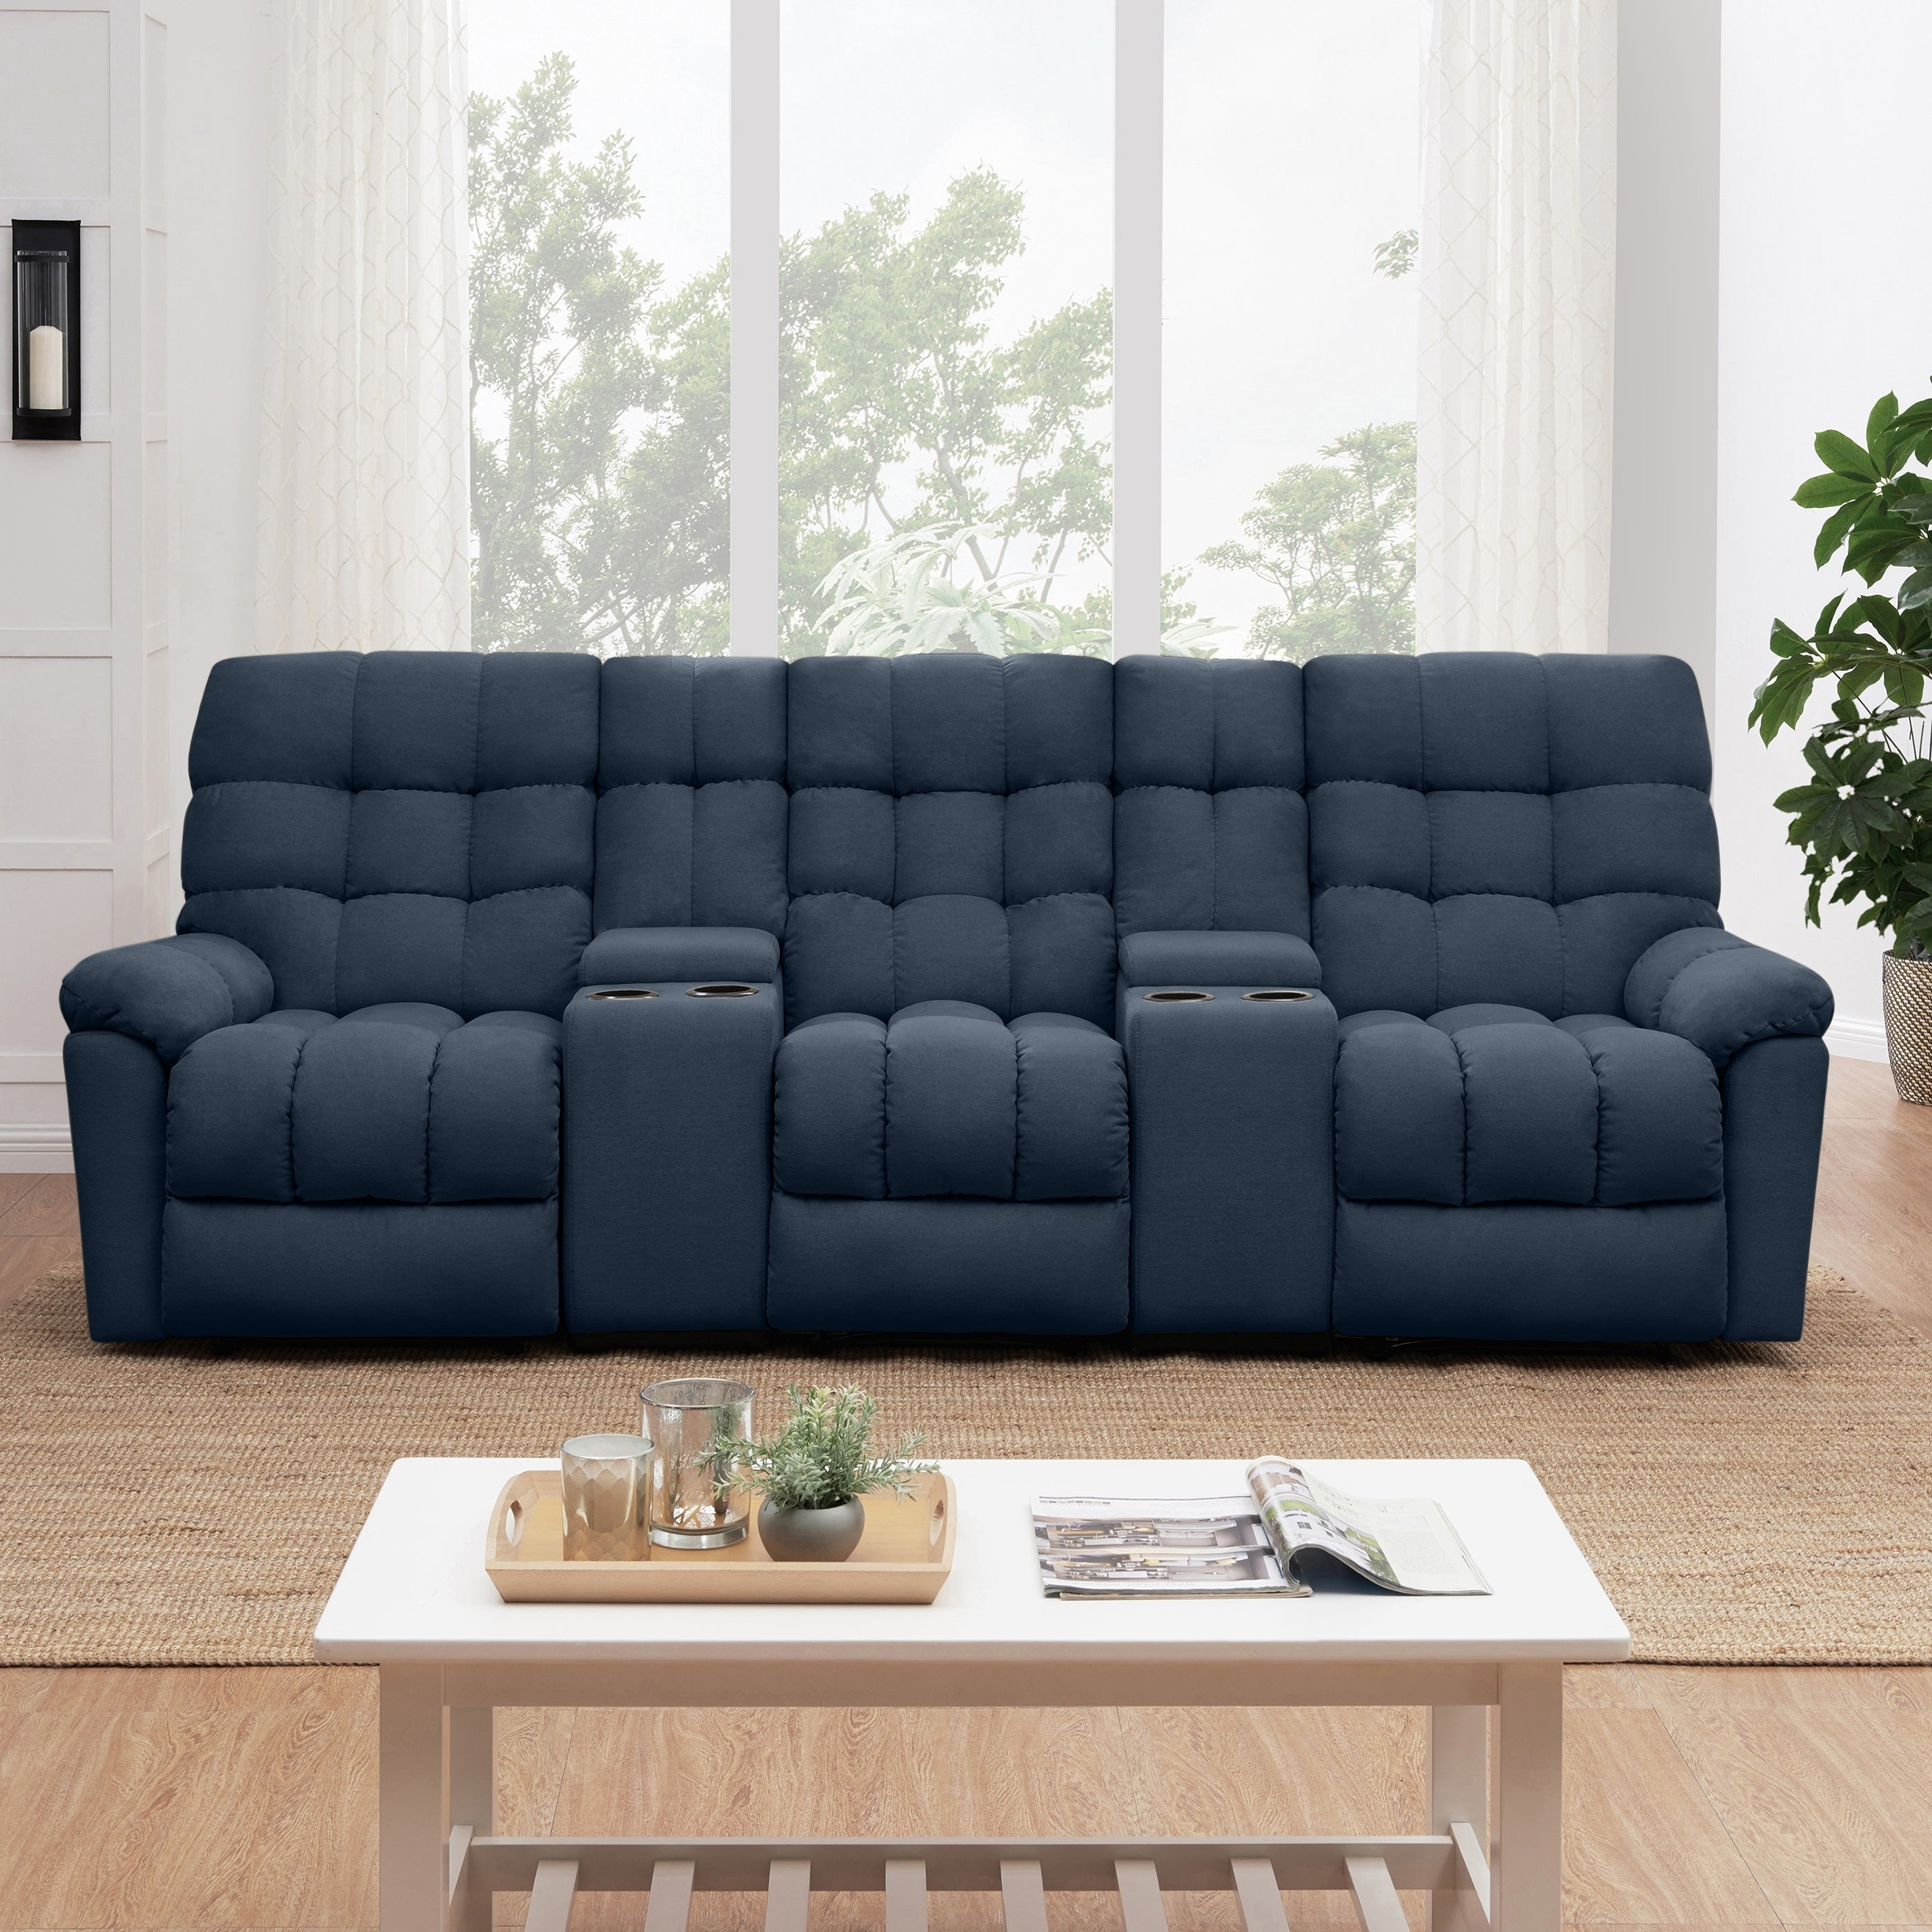 Shop prolounger medium blue tufted velvet 3 seat recliner sofa with power storage console on sale free shipping today overstock com 23527727